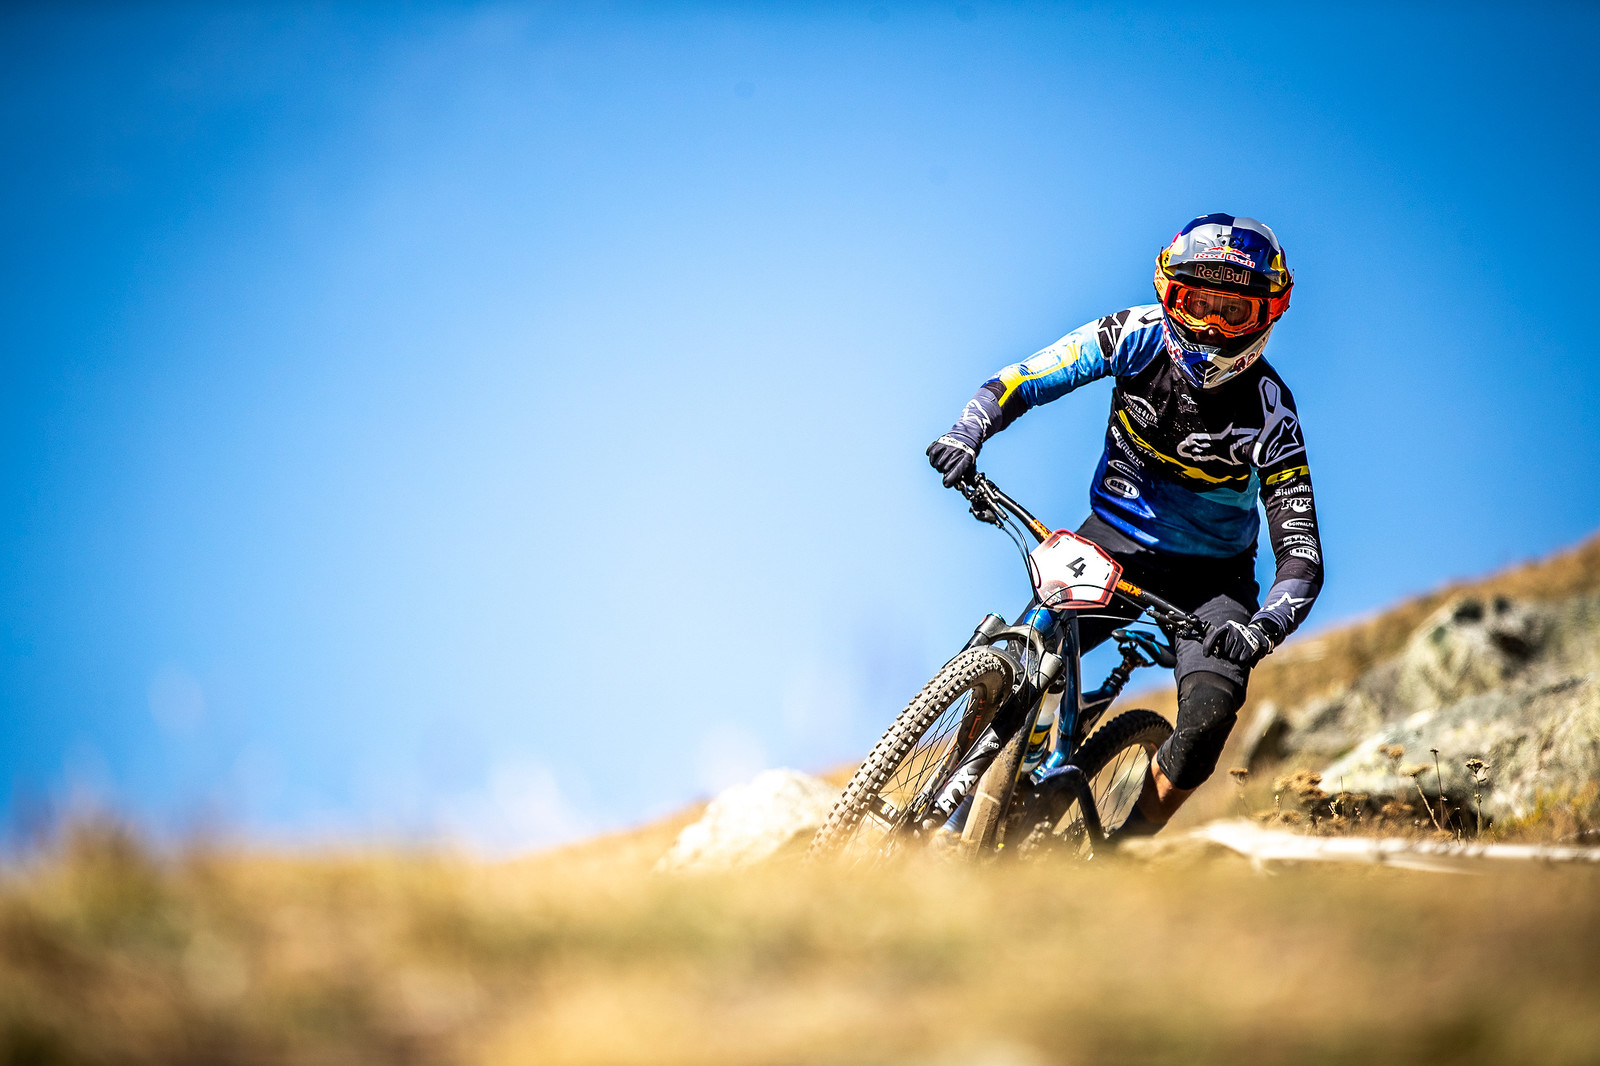 Martin ended the season on a high note with a win at EWS Zermatt